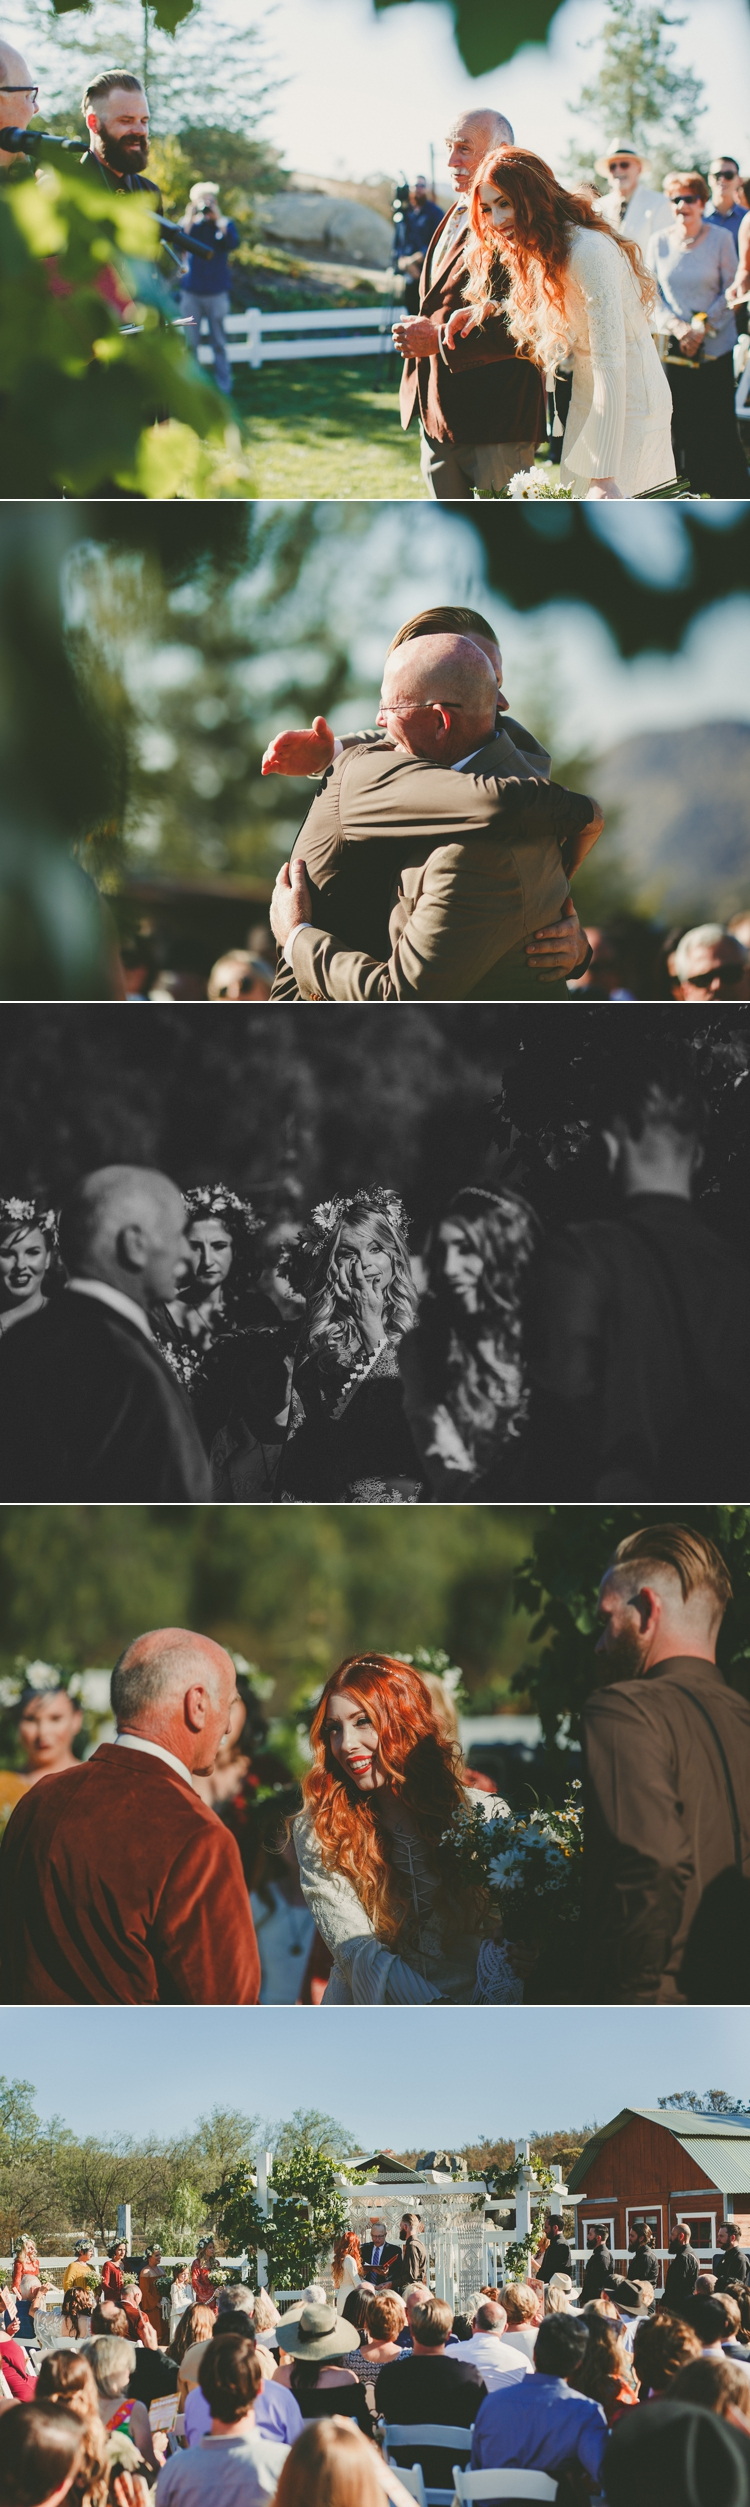 woodstock-inspired-wedding-photos-13